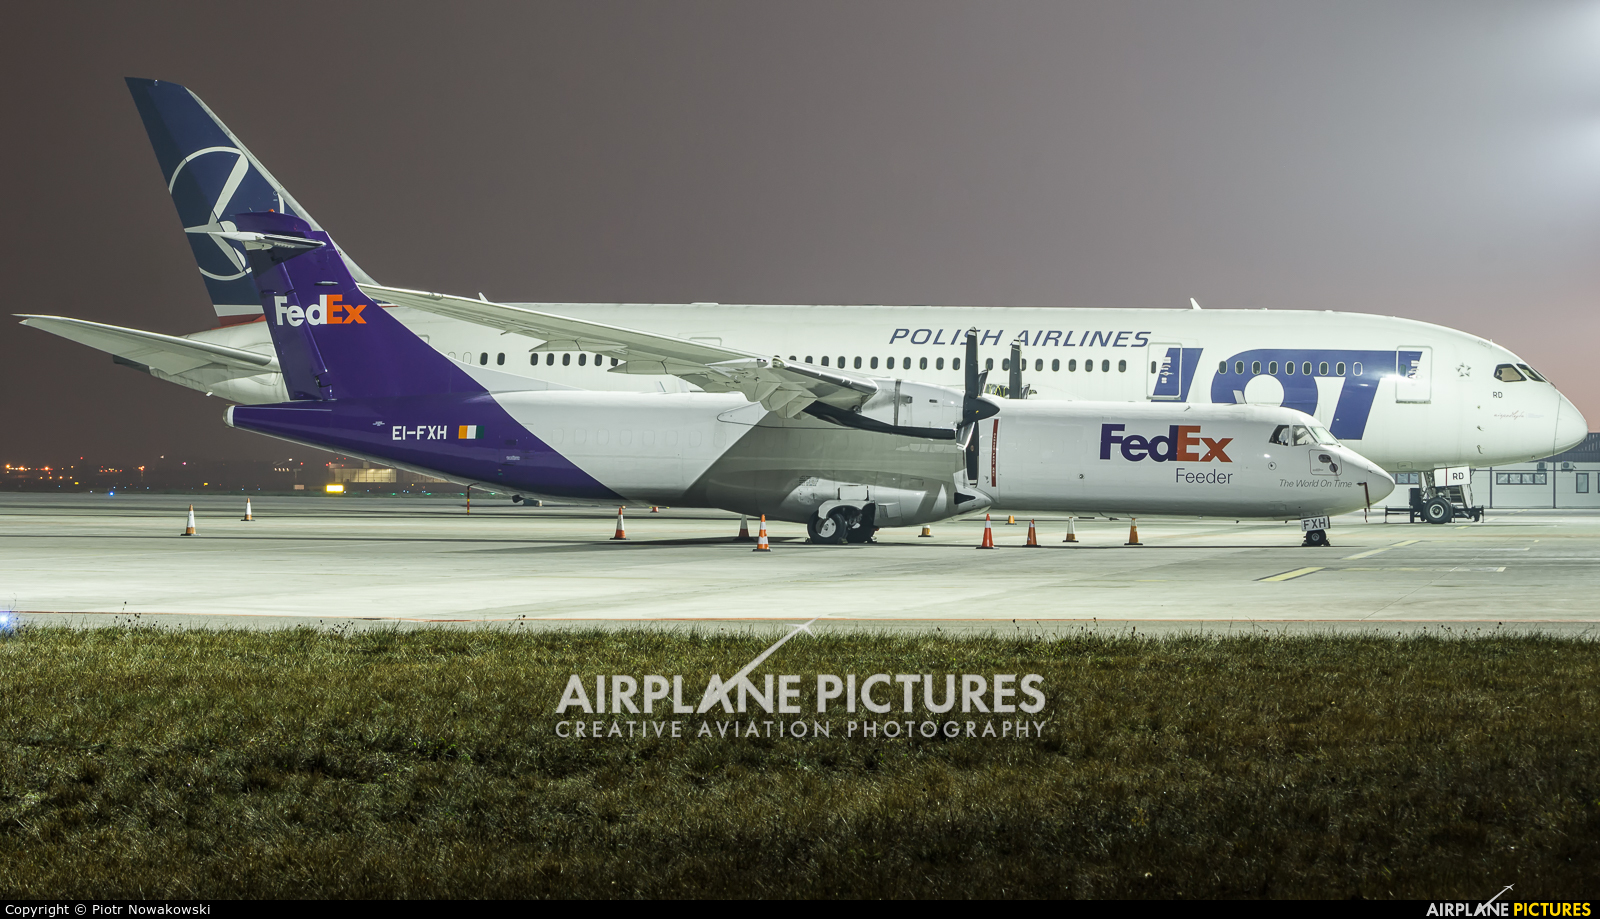 FedEx Feeder EI-FXH aircraft at Warsaw - Frederic Chopin